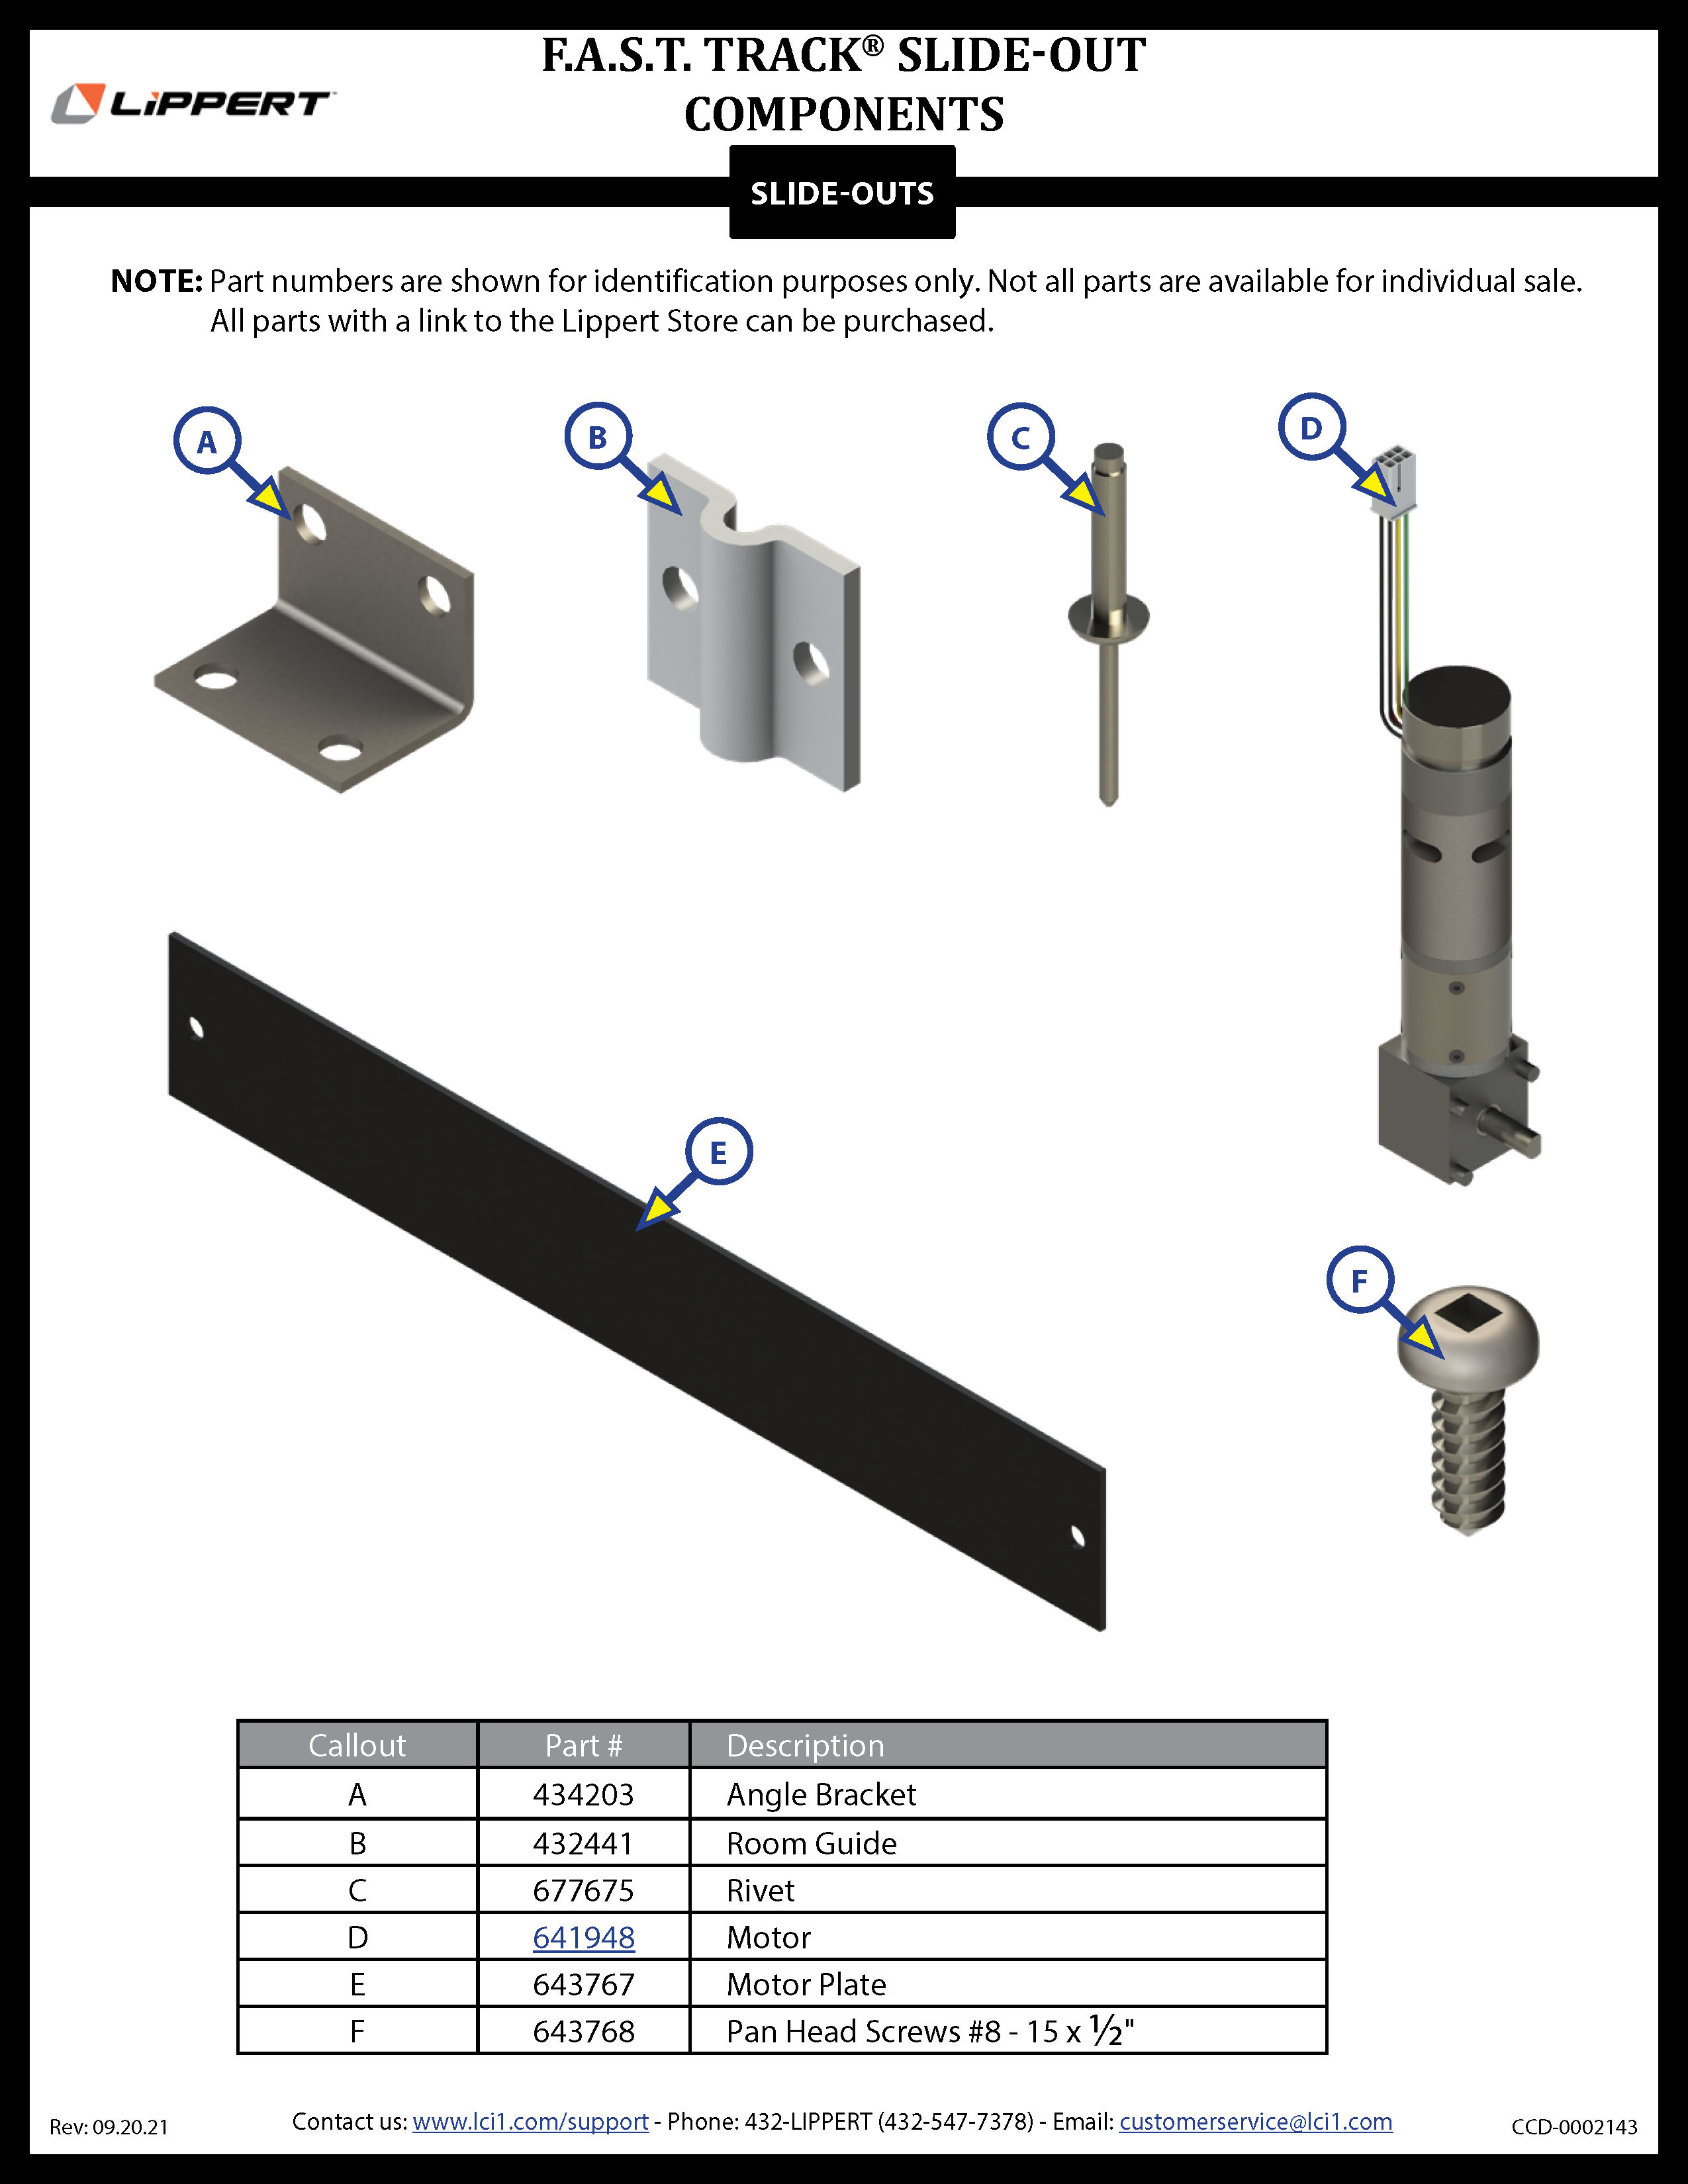 F.A.S.T. Track® Slide-Out Components